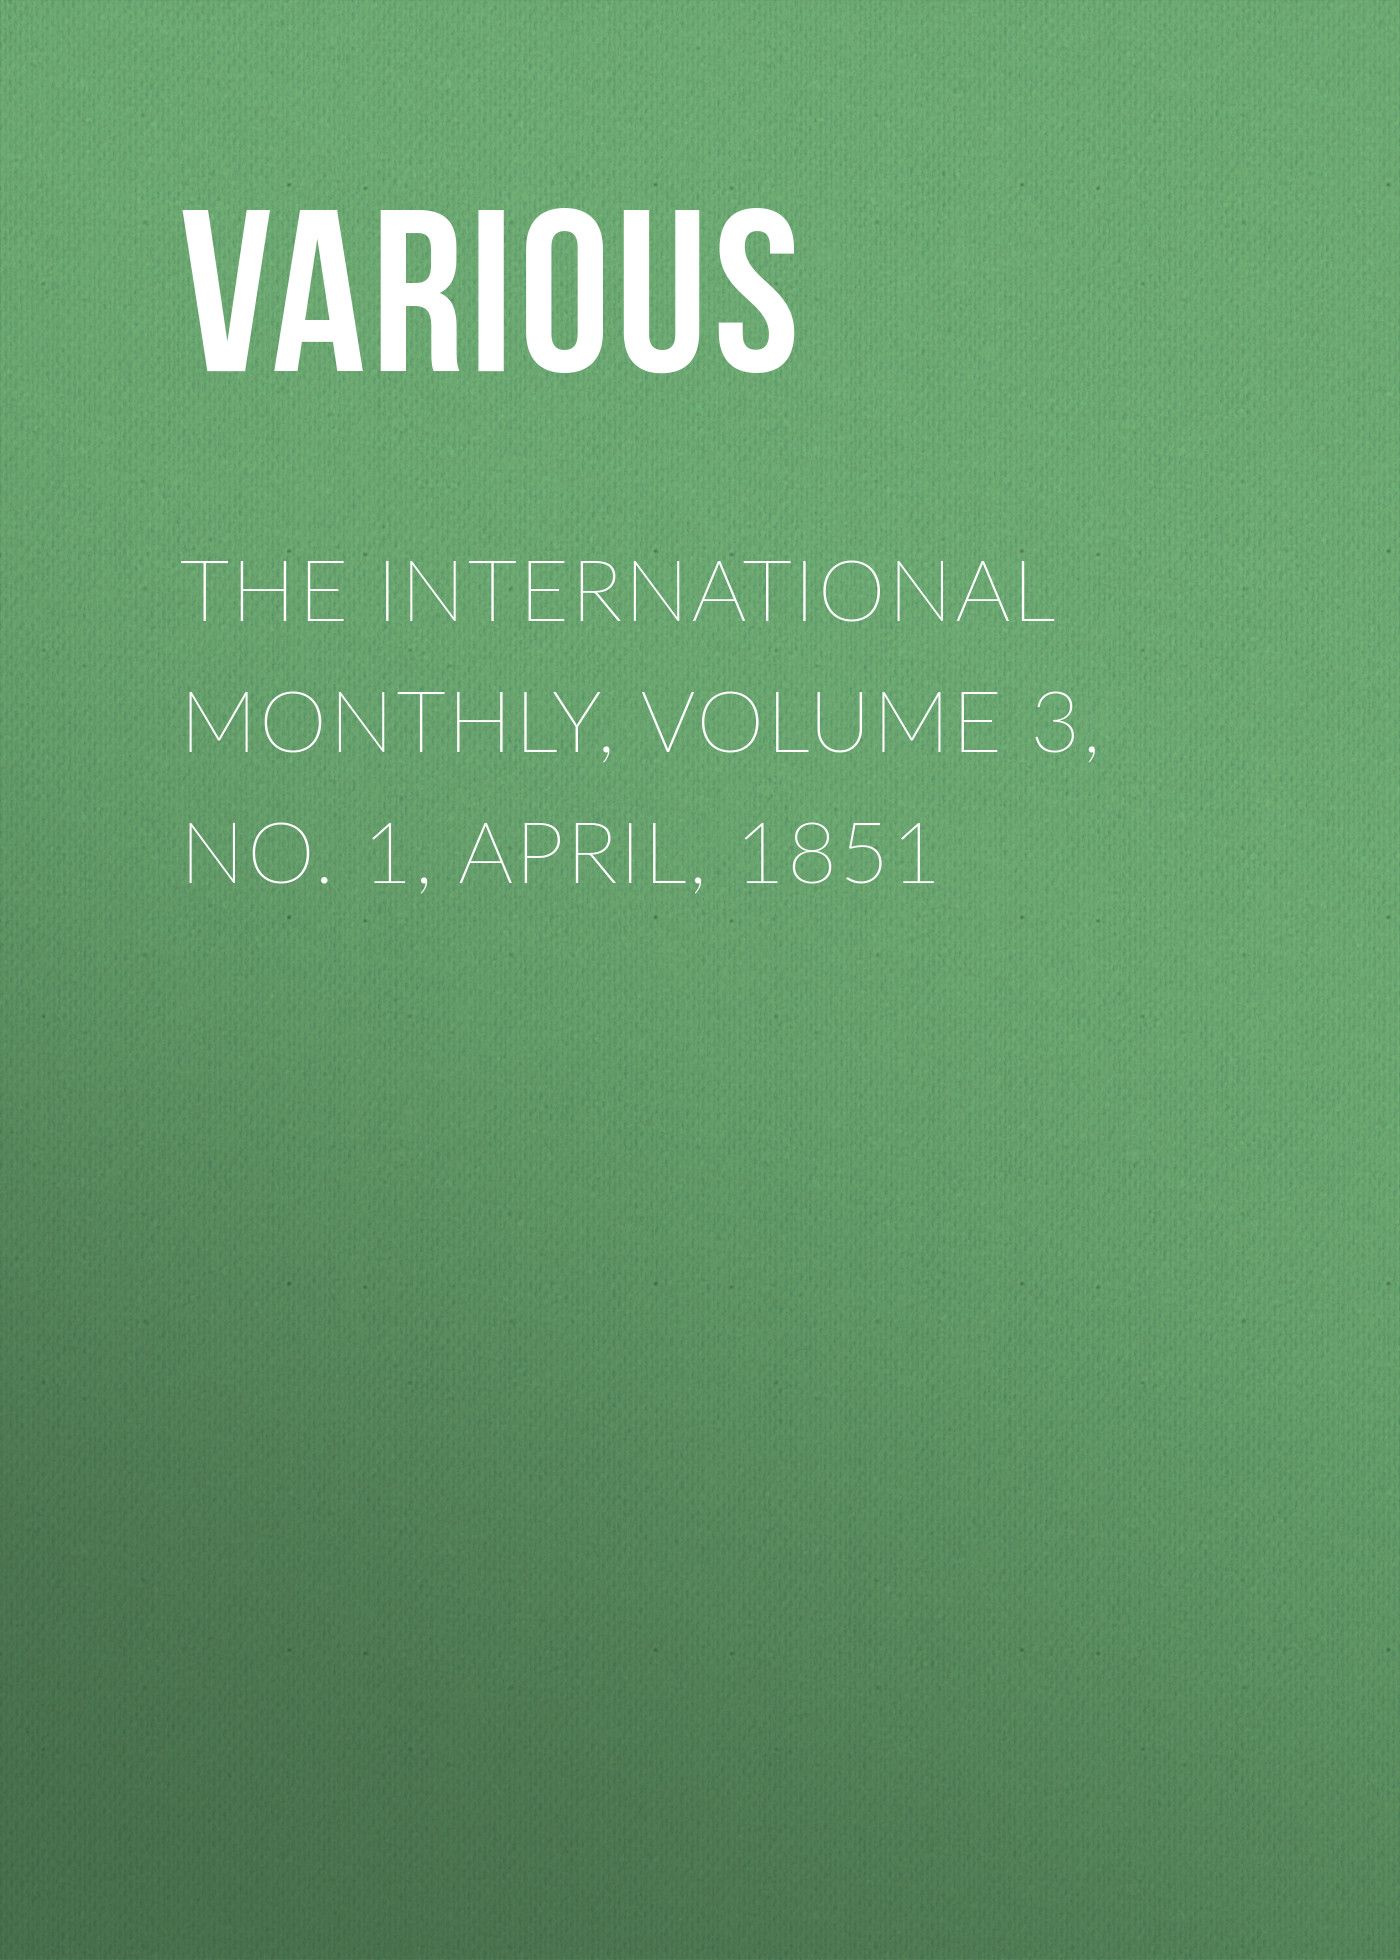 Various The International Monthly, Volume 3, No. 1, April, 1851 various the bay state monthly volume 3 no 5